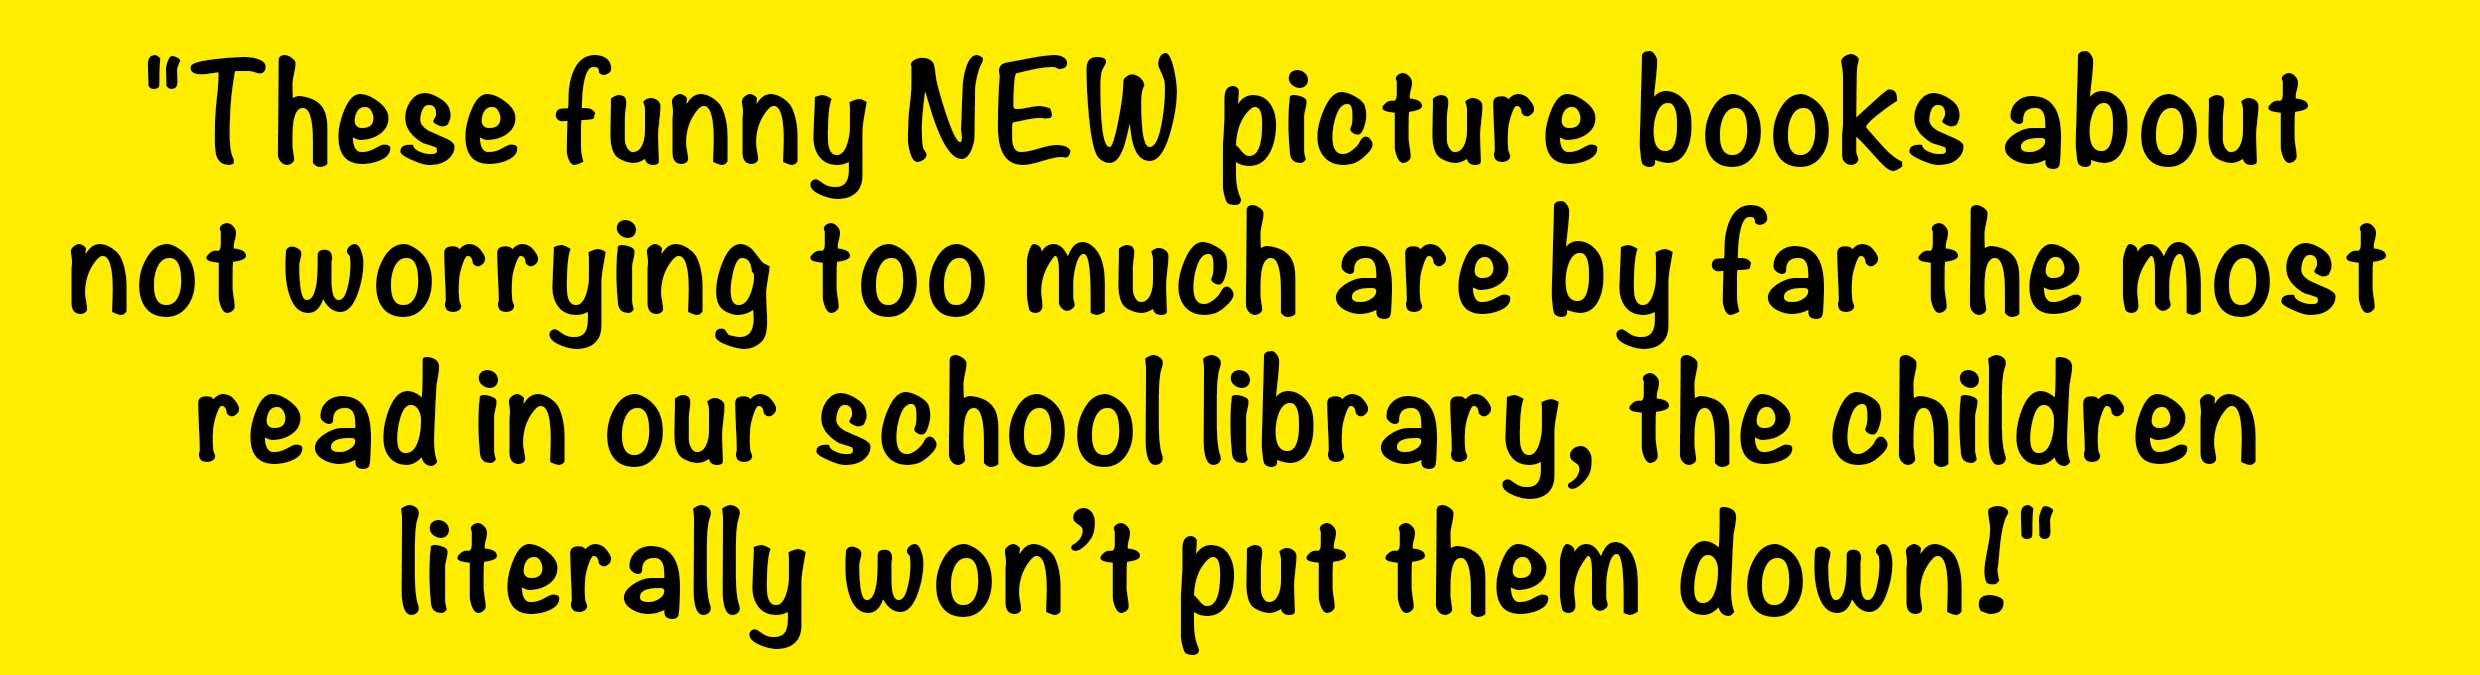 Brilliant new children's picture books quote